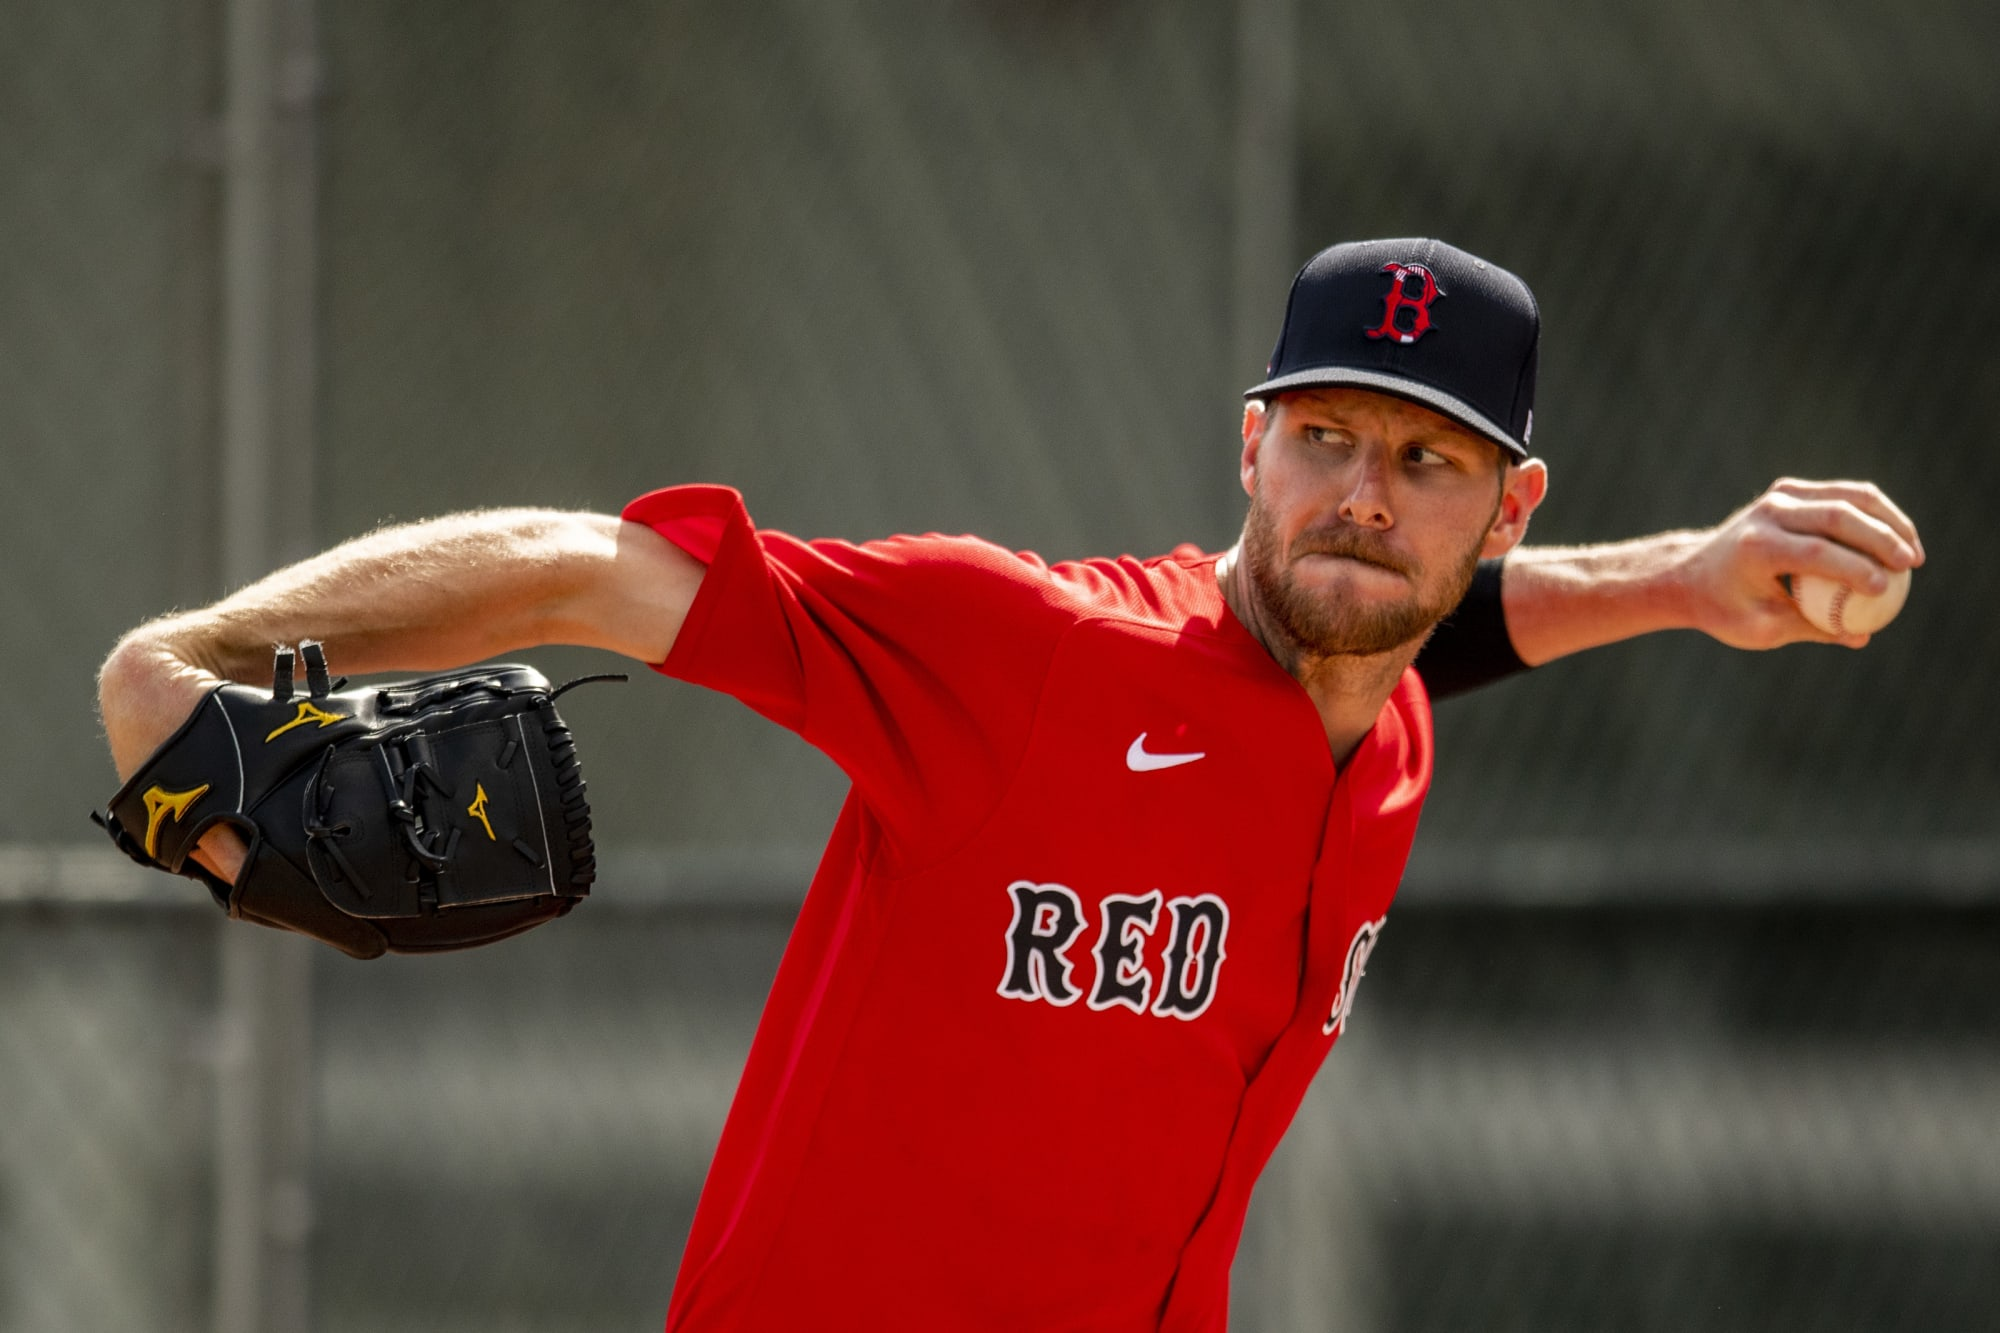 Boston Red Sox: There is no way Chris Sale pitches 10 more years